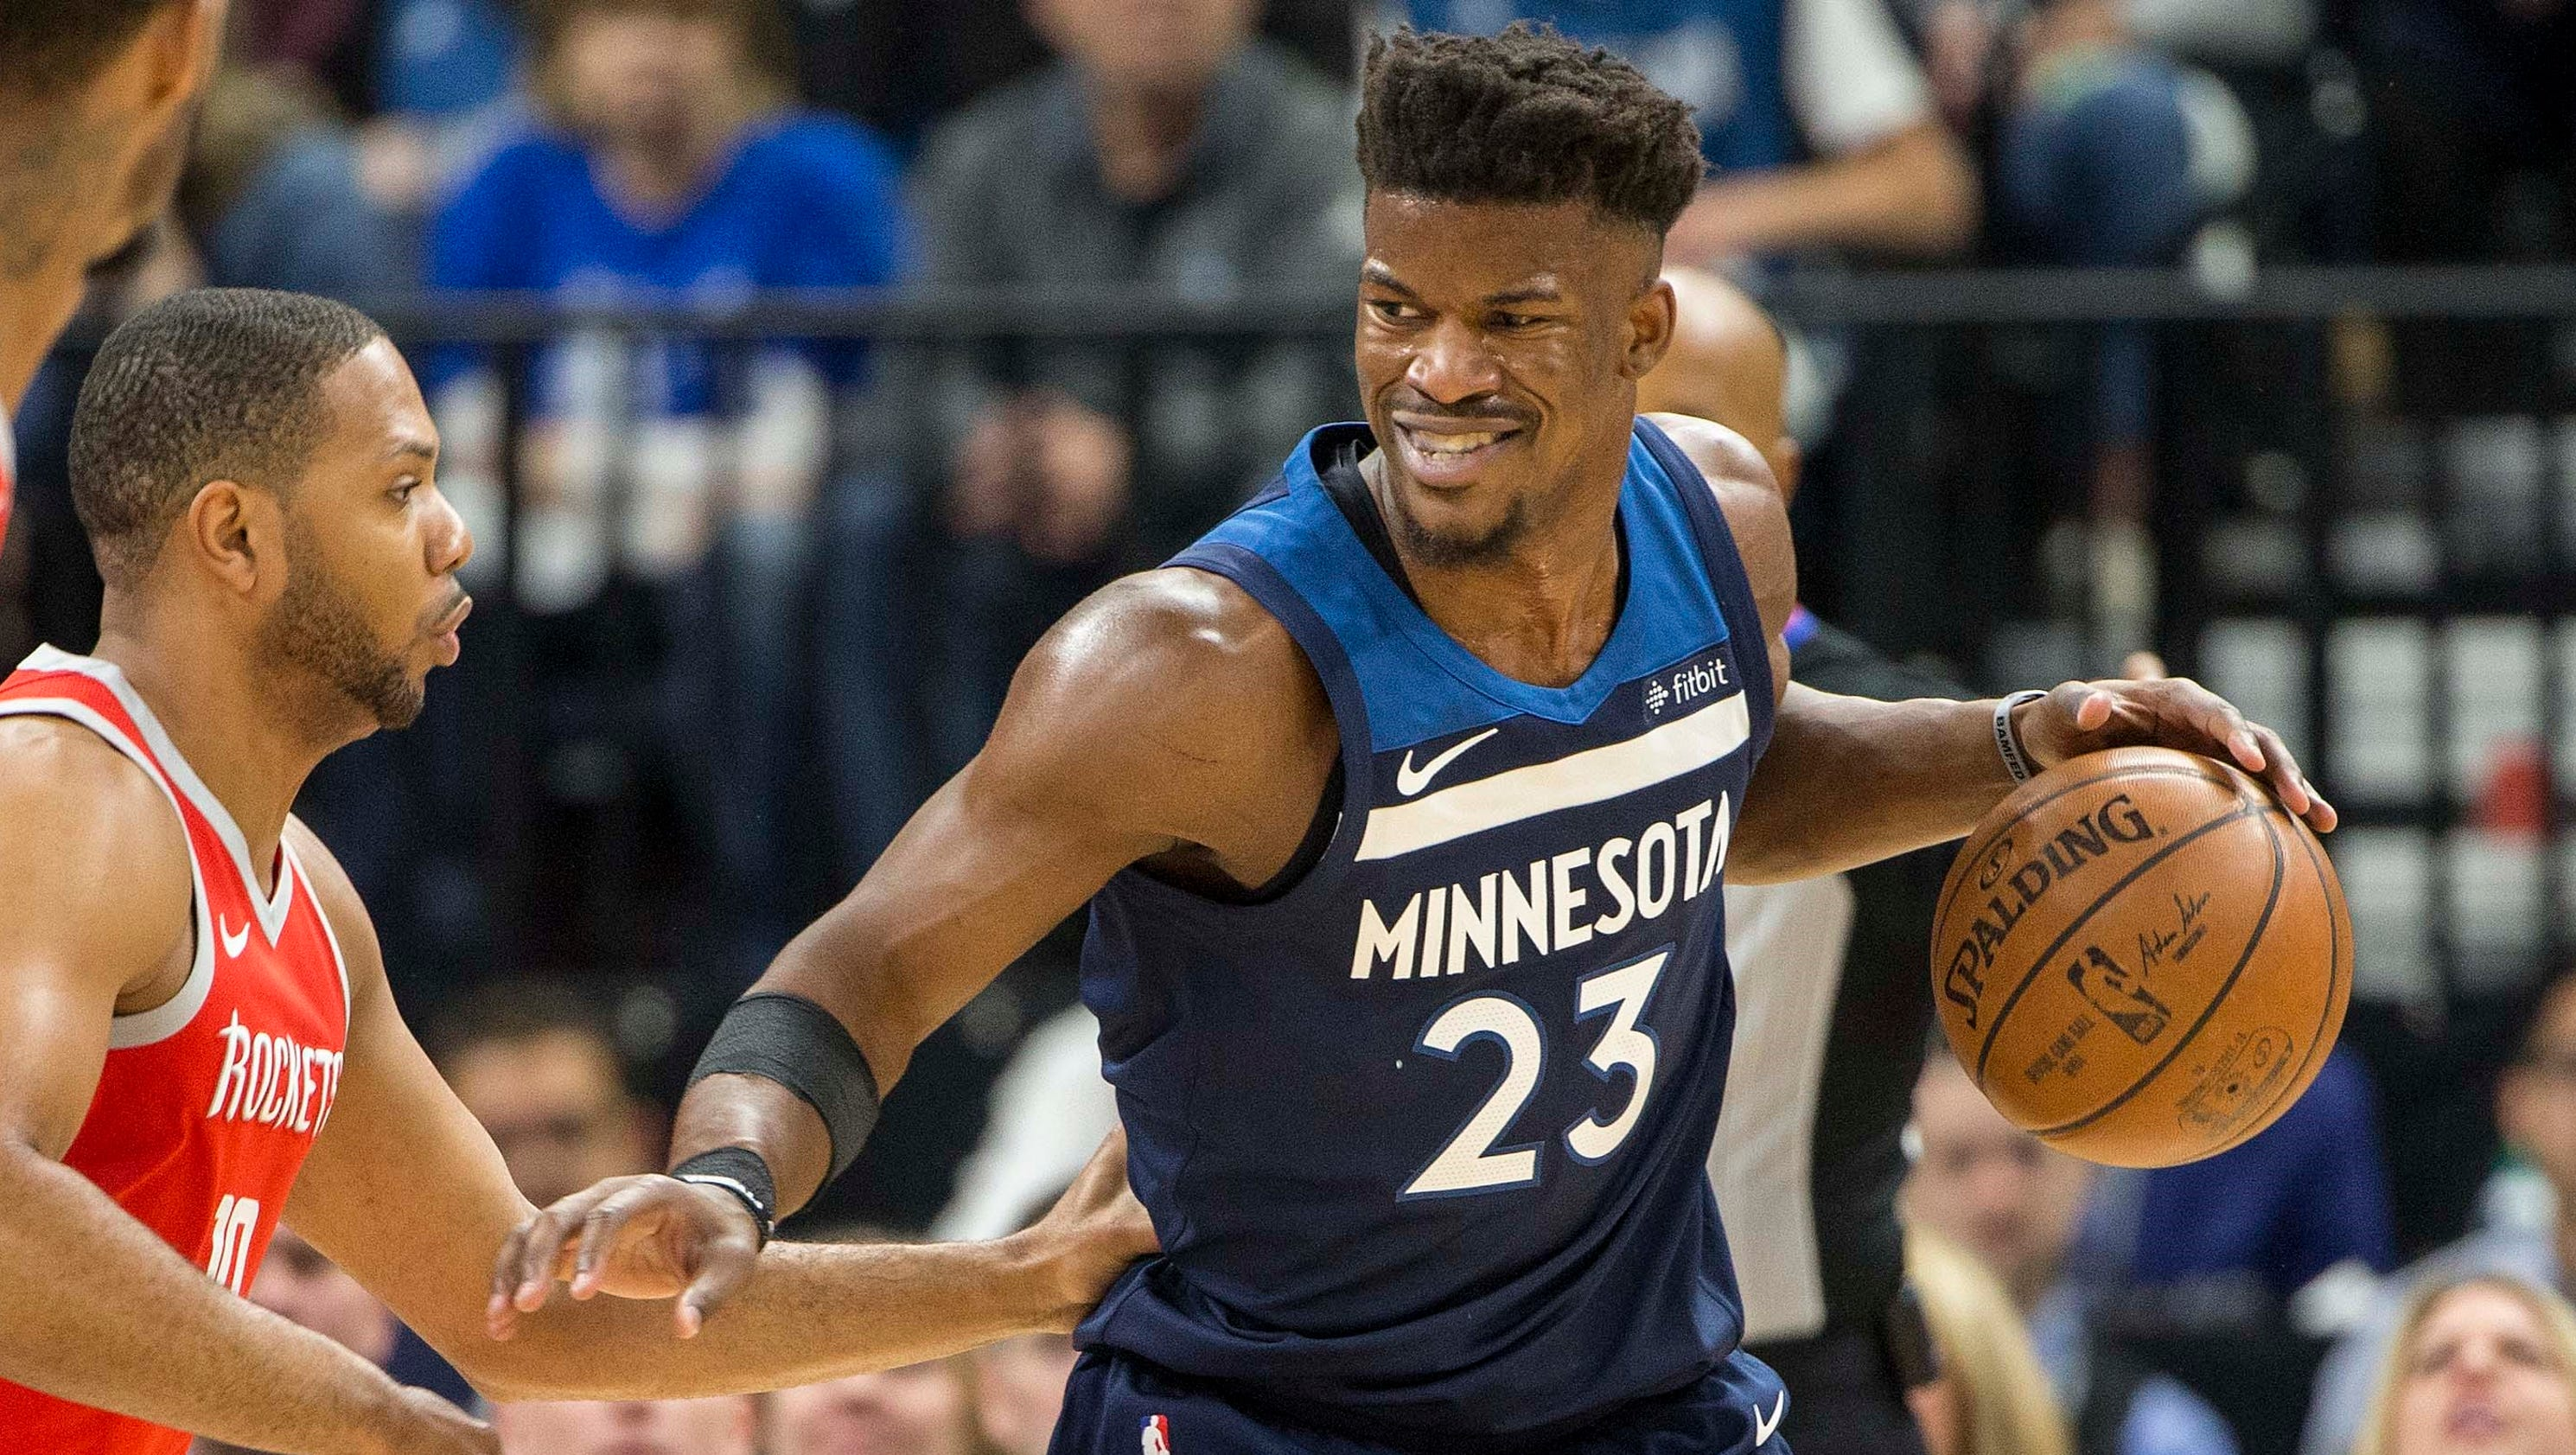 636599461200562426-2018-04-21-jimmy-butler